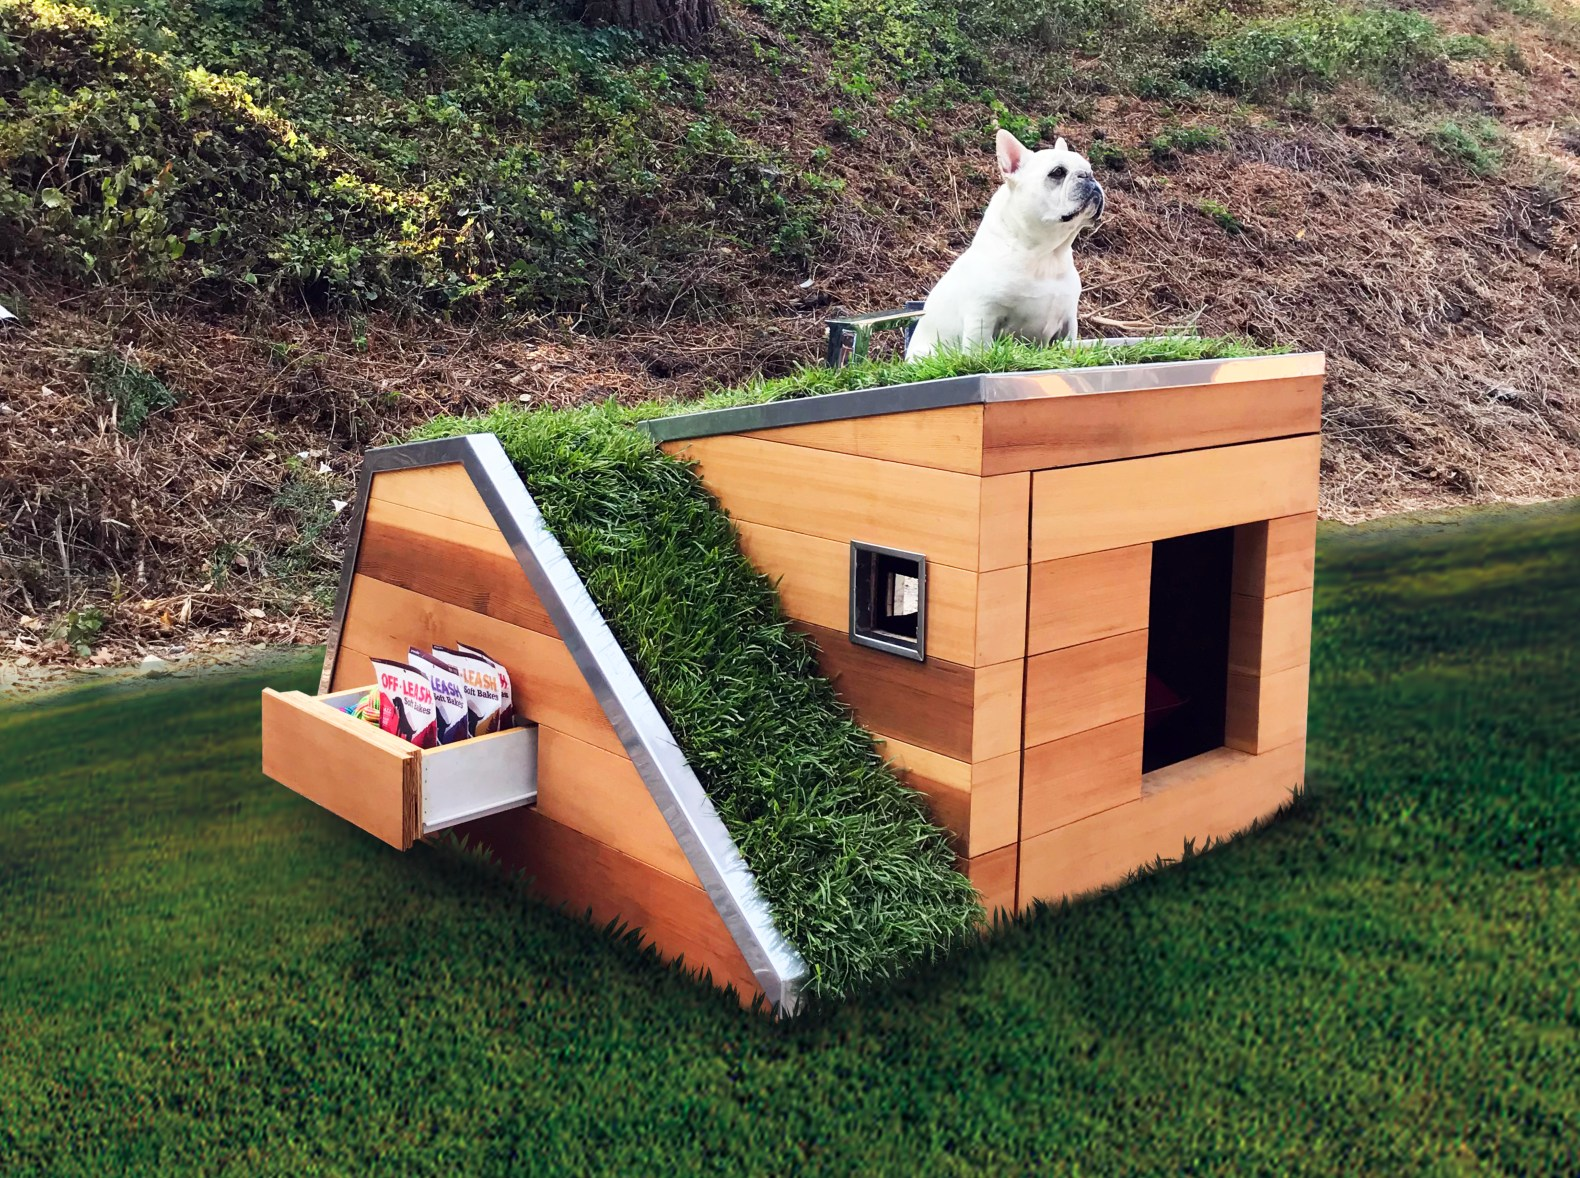 Dog House Solar Powered Sustainable Dog House With A Green Roof Keeps Pups Cool